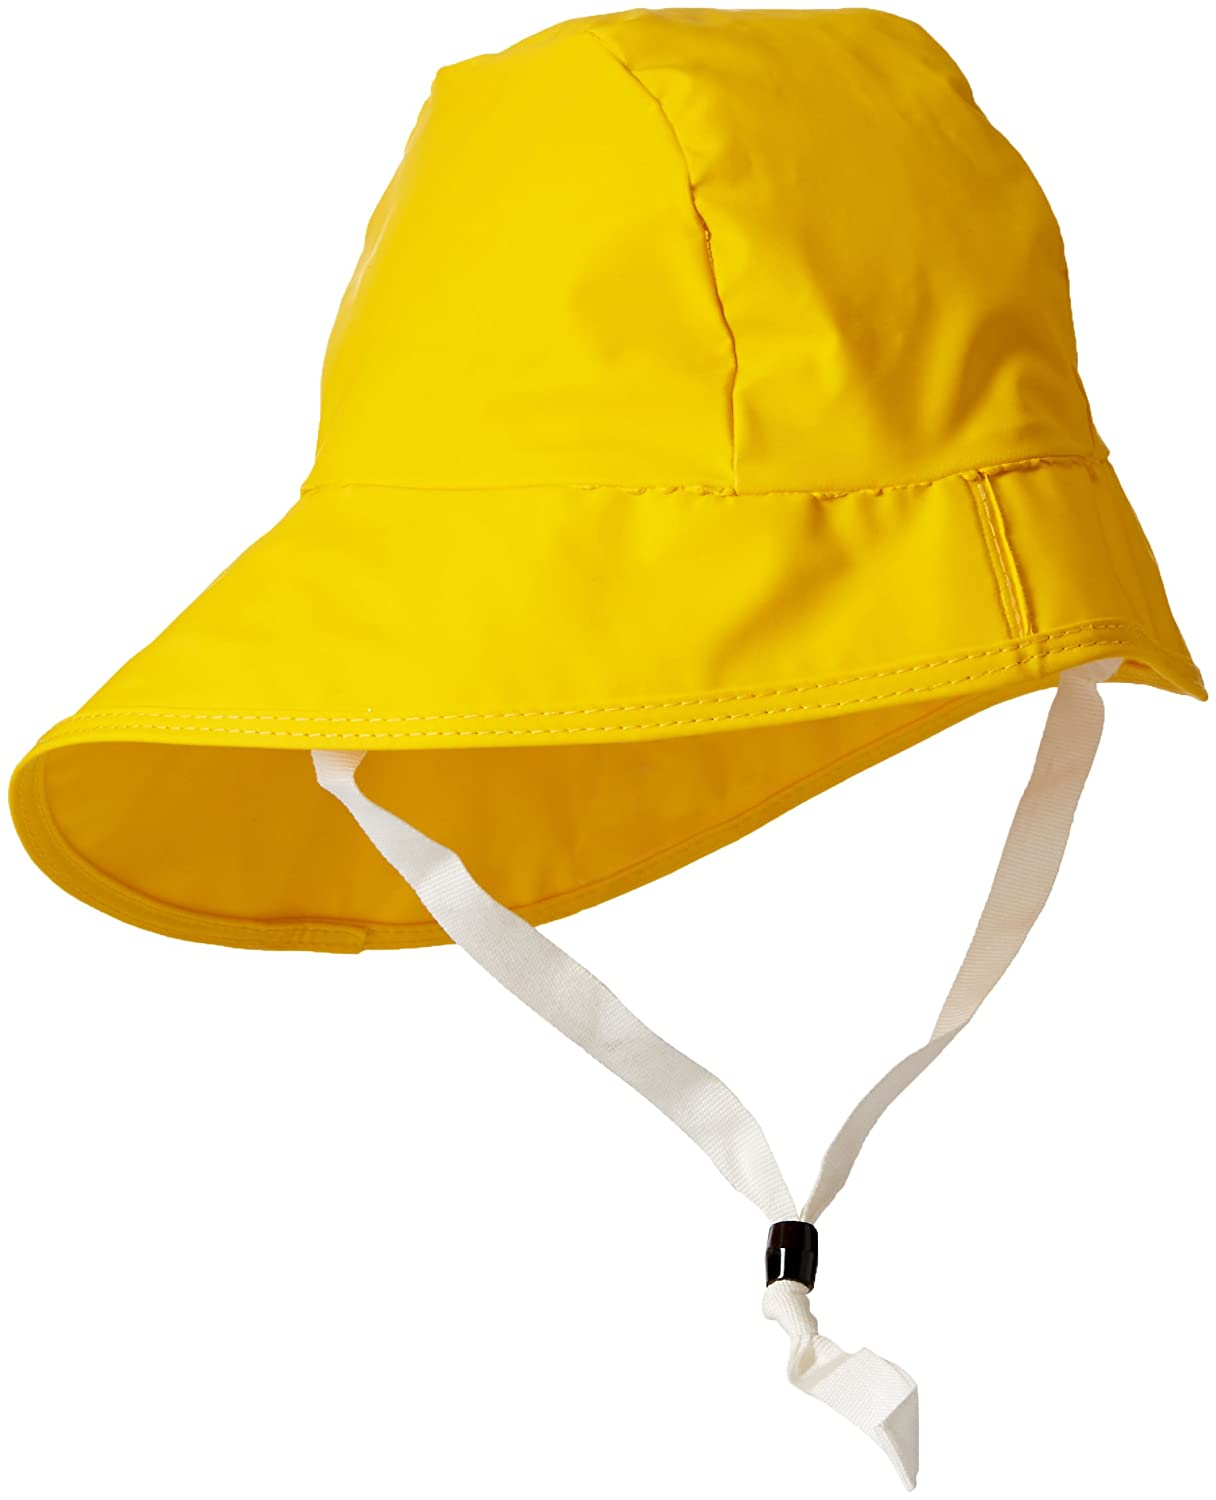 Helly Hansen 79816_310-55/56 Size 55/56 'Svolvaer Sou Wester' Rain Hat - Light Yellow